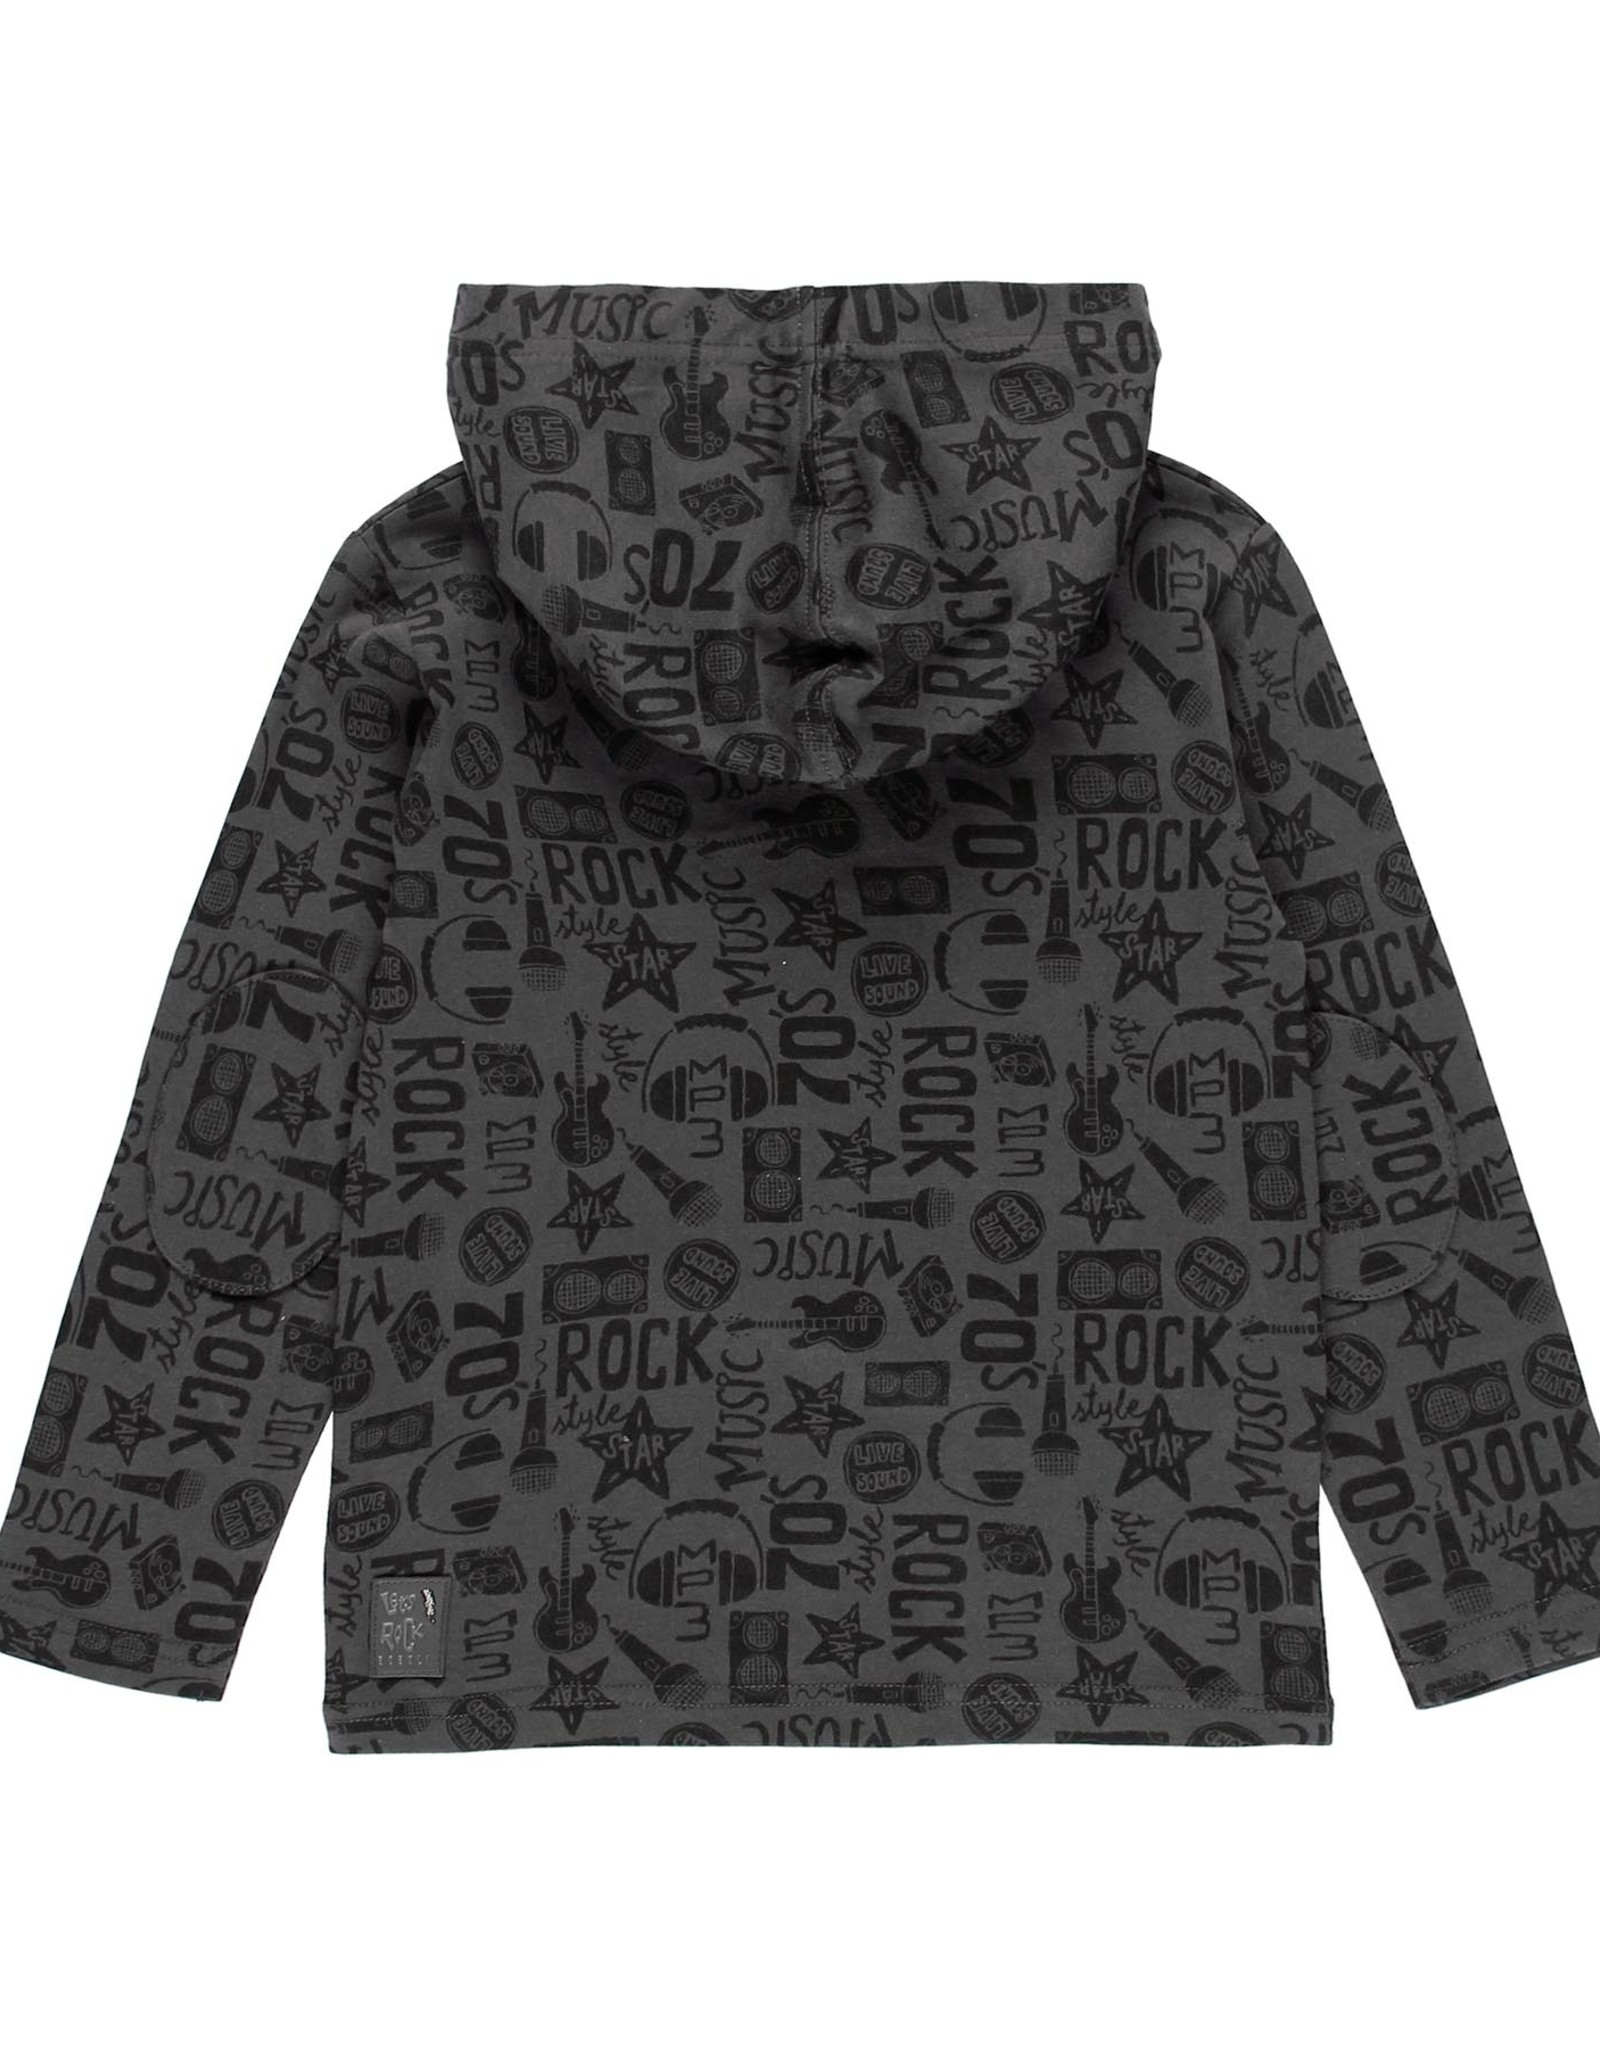 Boboli Shirt w/ Hood - Let's Rock!